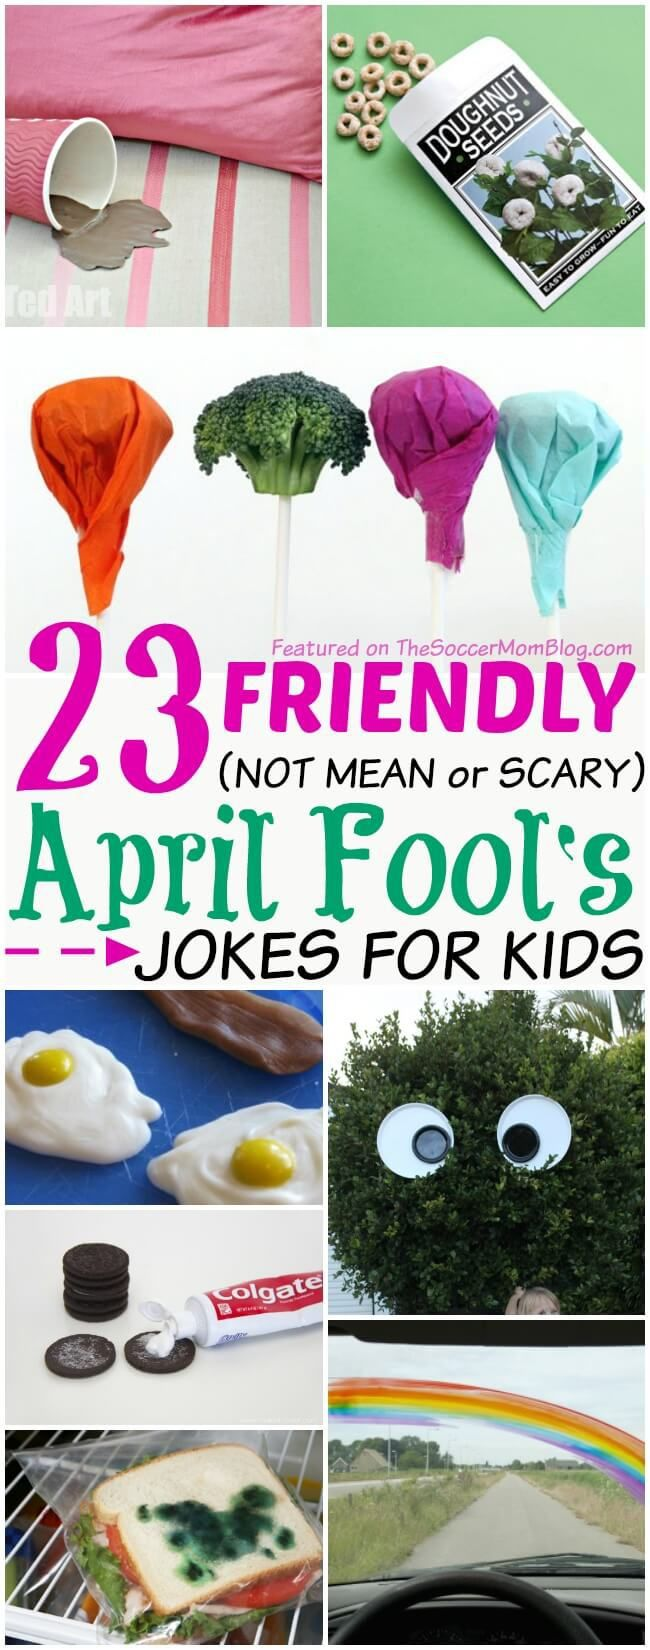 """Kids will LOVE being """"in"""" on these goofy pranks! A fun collection of GOOD-spirited April Fools Day jokes for kids (nothing mean or scary here!)"""